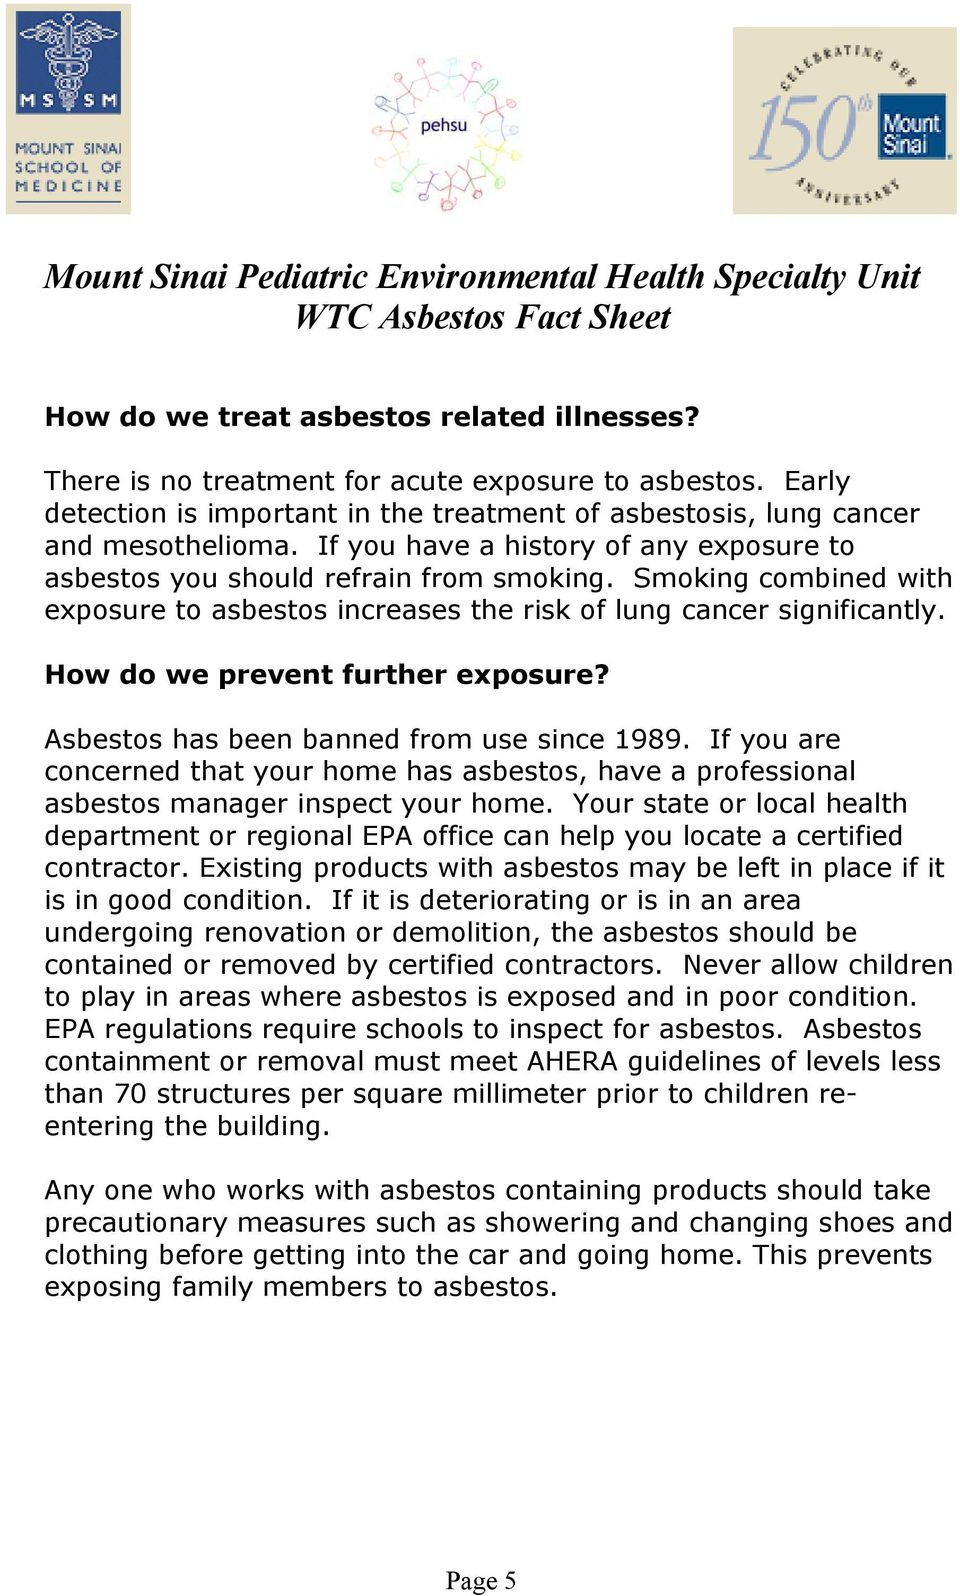 How do we prevent further exposure? Asbestos has been banned from use since 1989. If you are concerned that your home has asbestos, have a professional asbestos manager inspect your home.